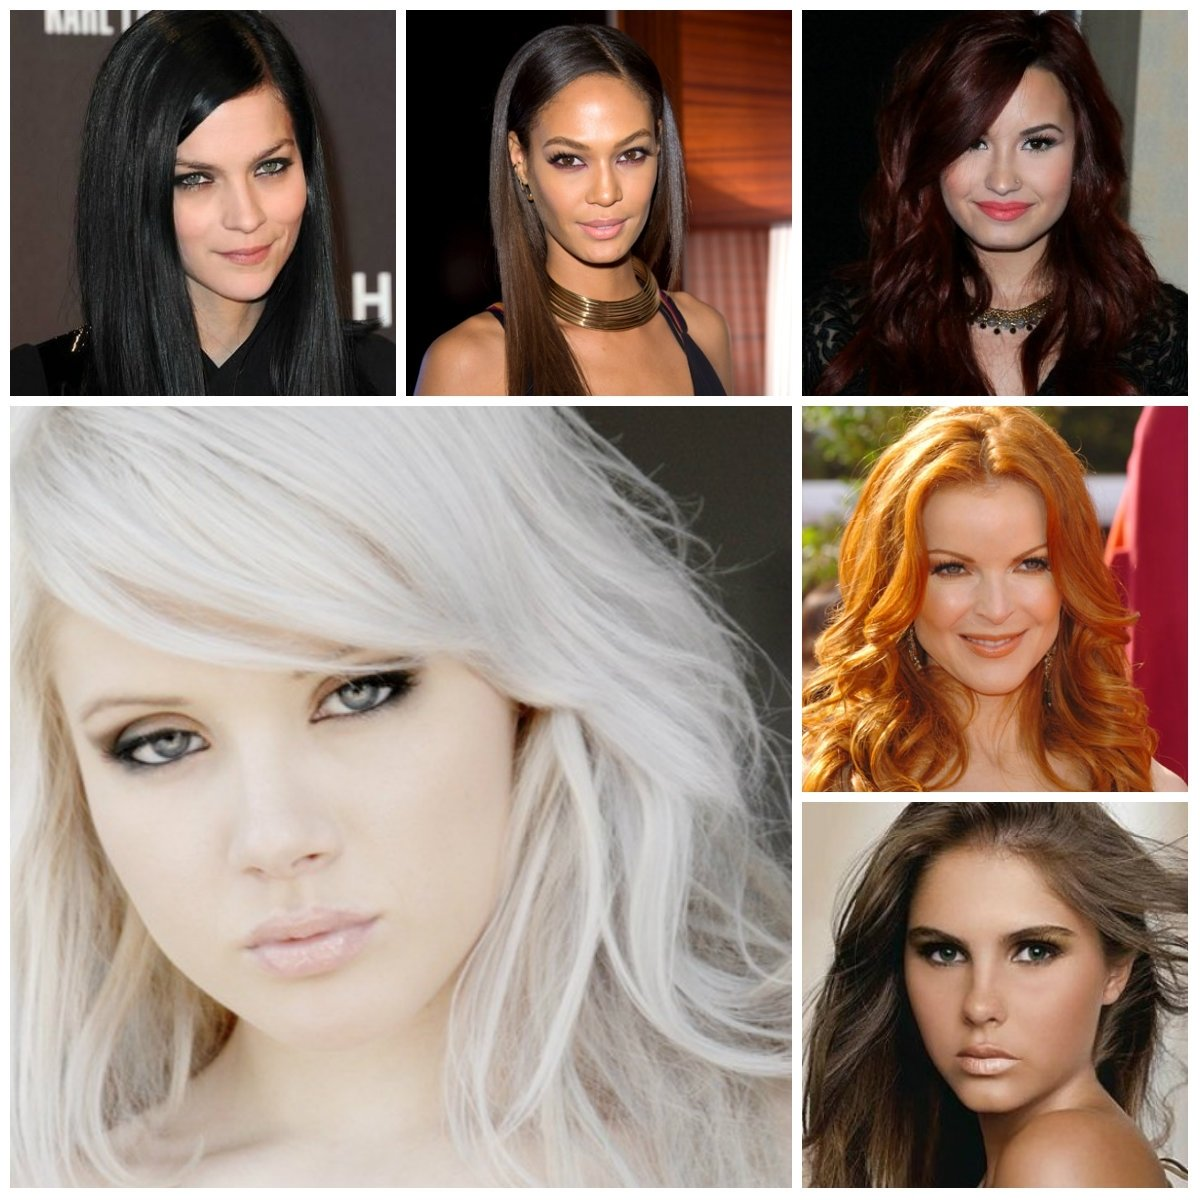 10 Great Hair Color Ideas For Dark Skin Tones stylish hair color ideas and your skin tone new haircuts to try 5